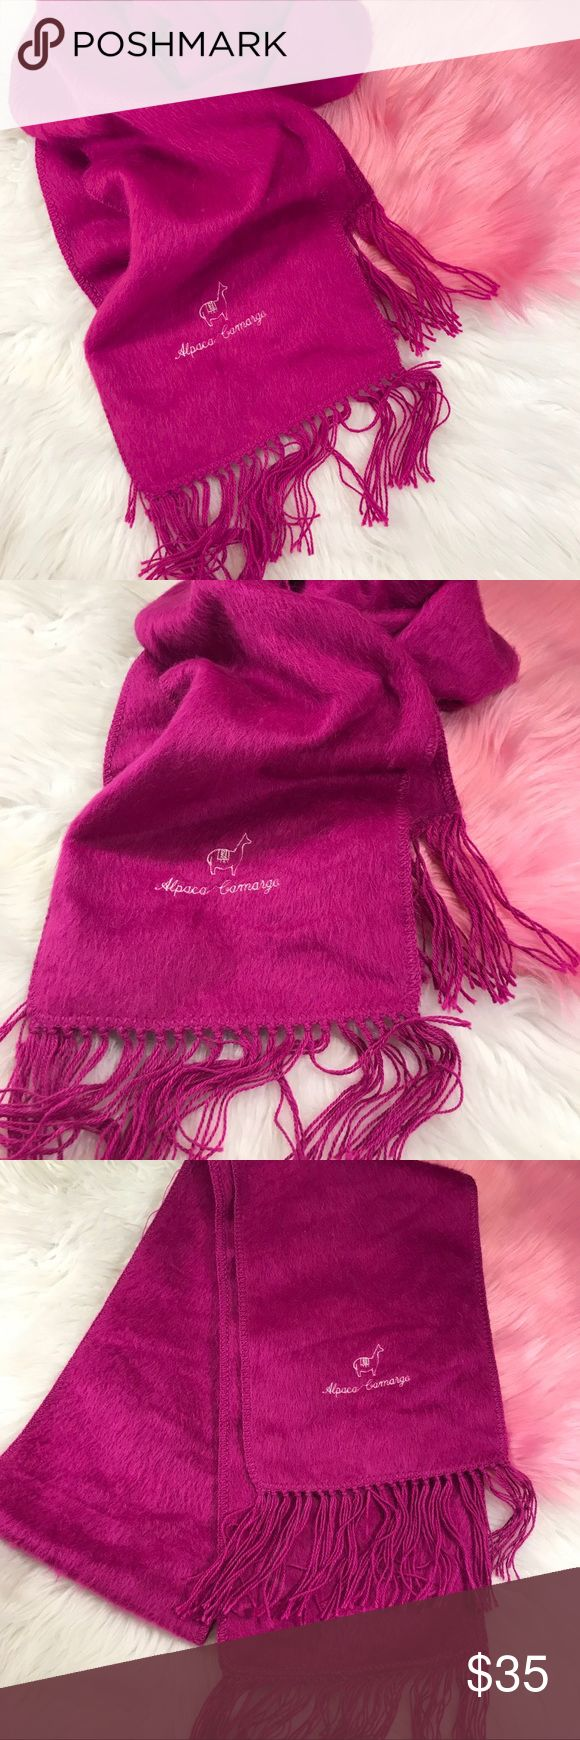 Pink alpaca scarf Stunning alpaca scarf  Good condition • Open to offers via button Boutique Accessories Scarves & Wraps